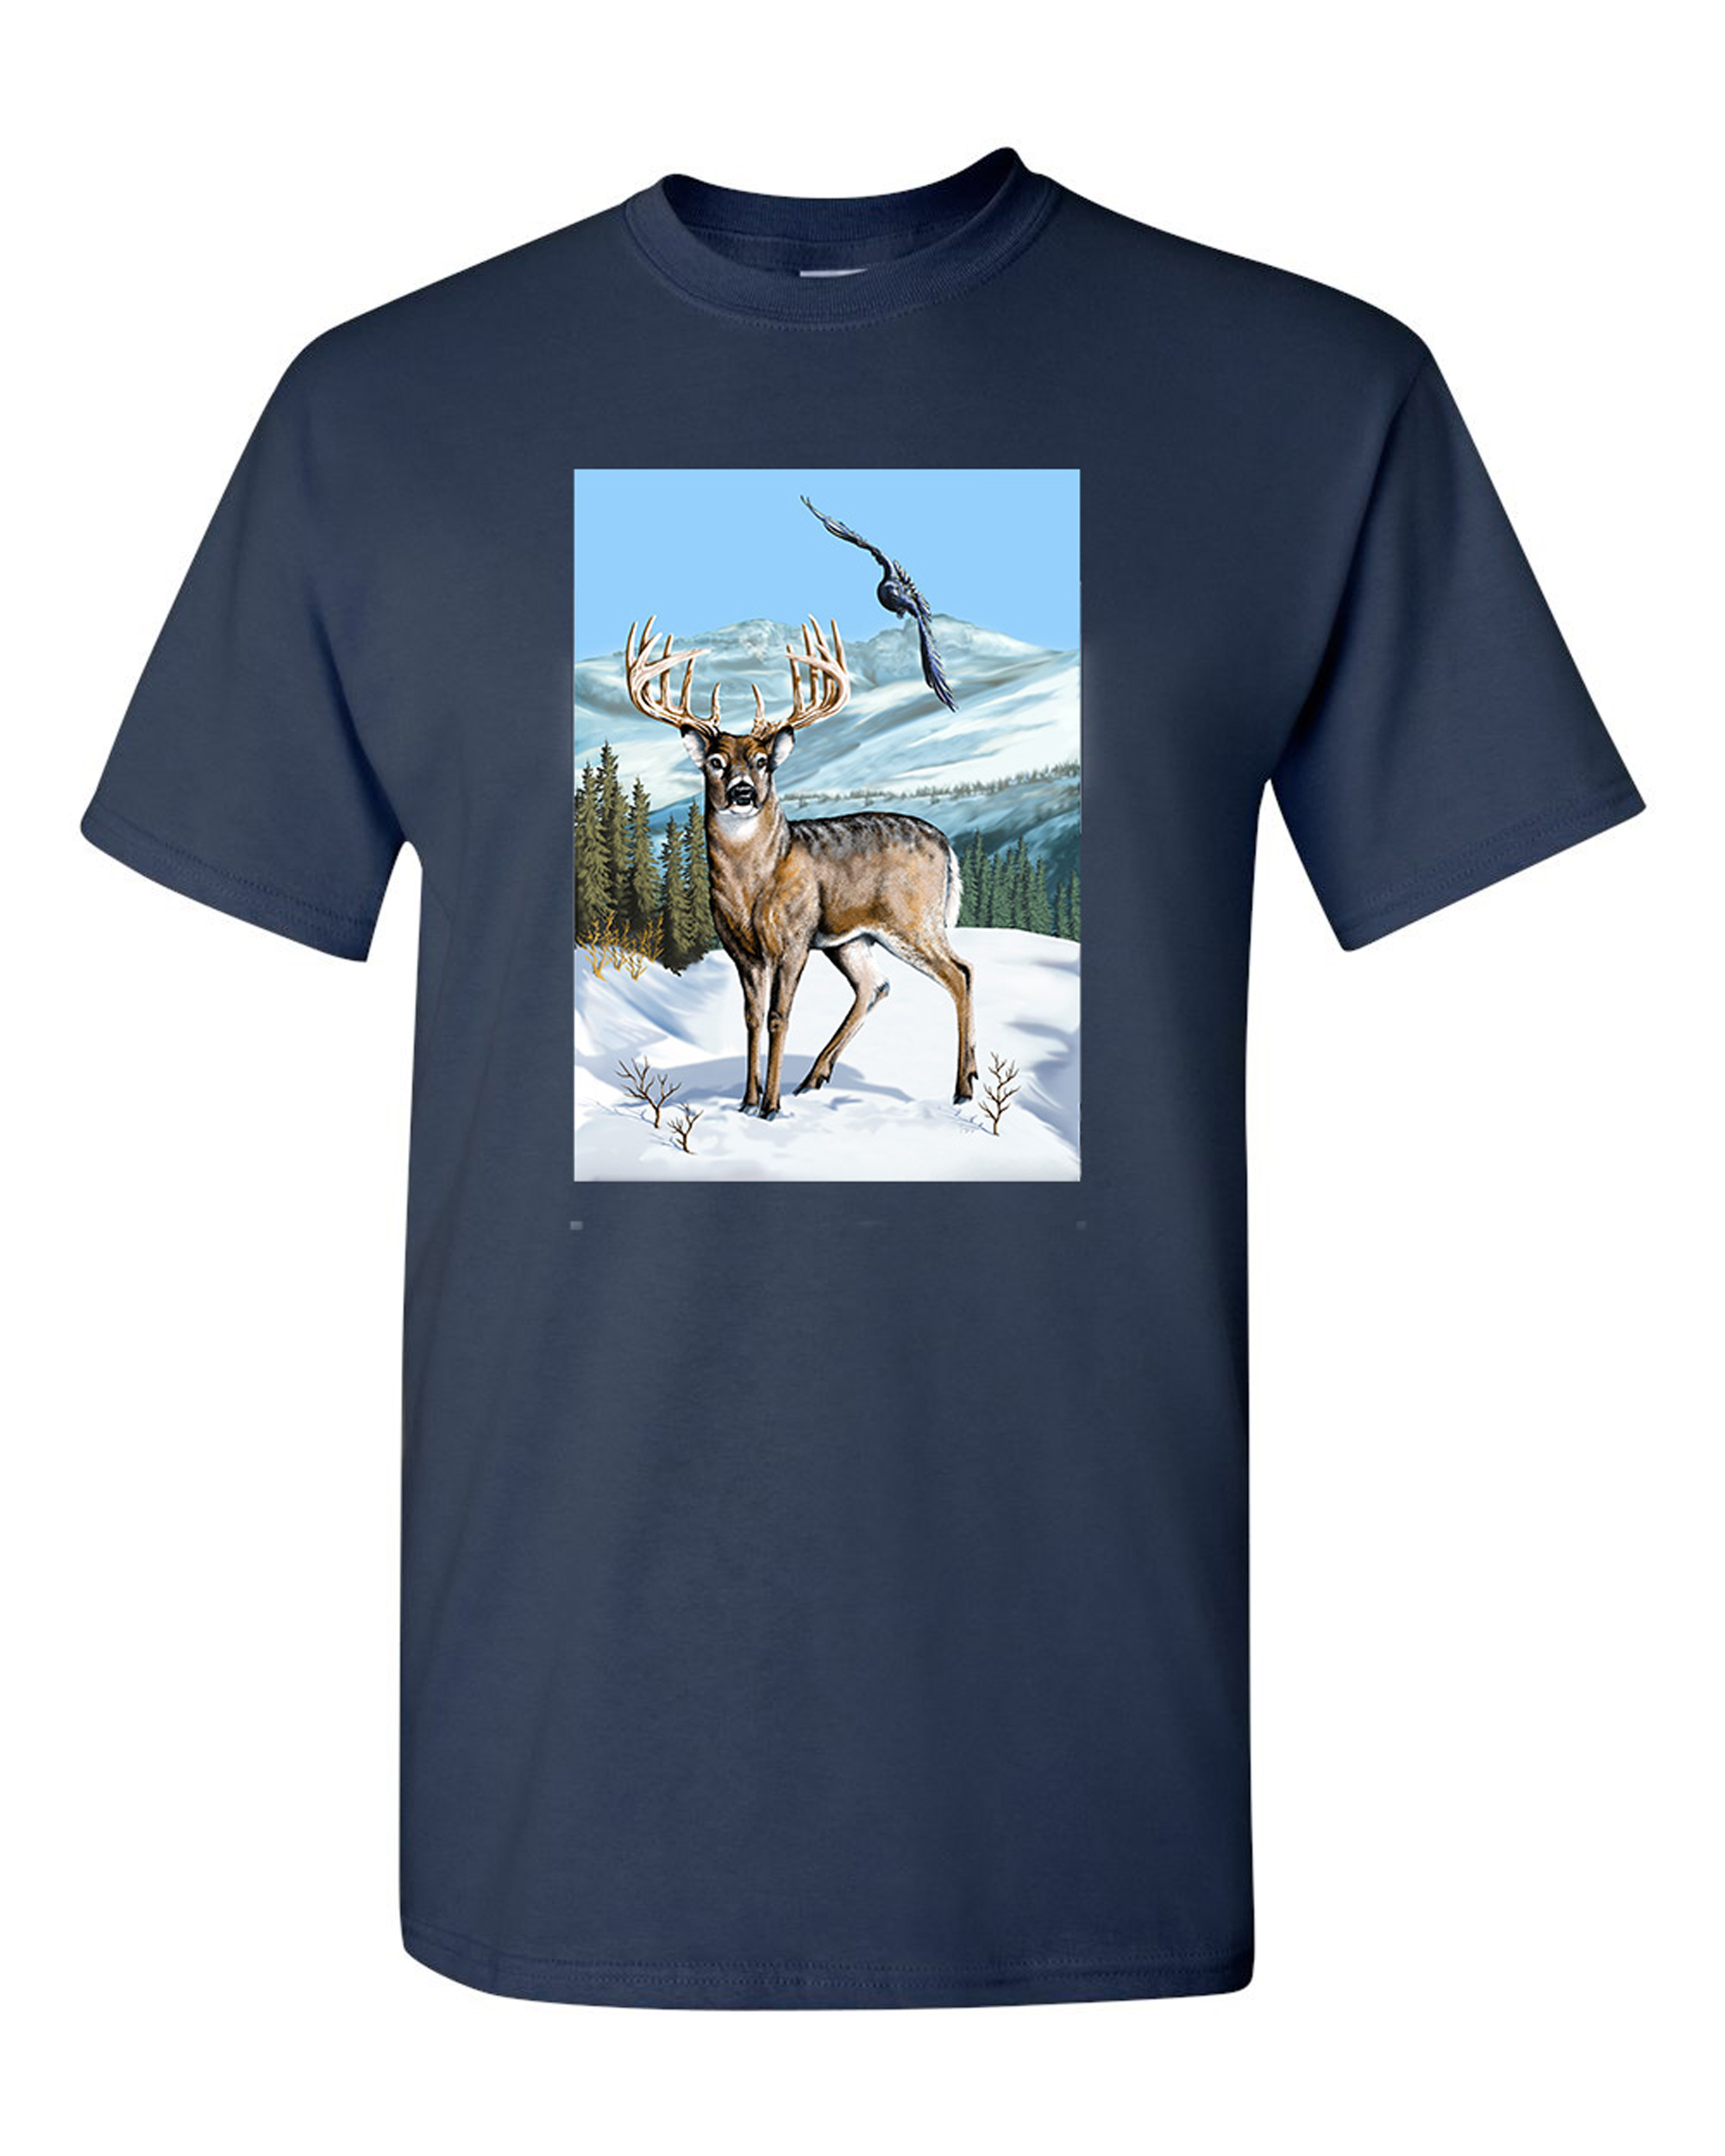 Deer Winter Scene Hawk Animal Tanya Ramsey Artworks Art DT Adult T-Shirt Tee